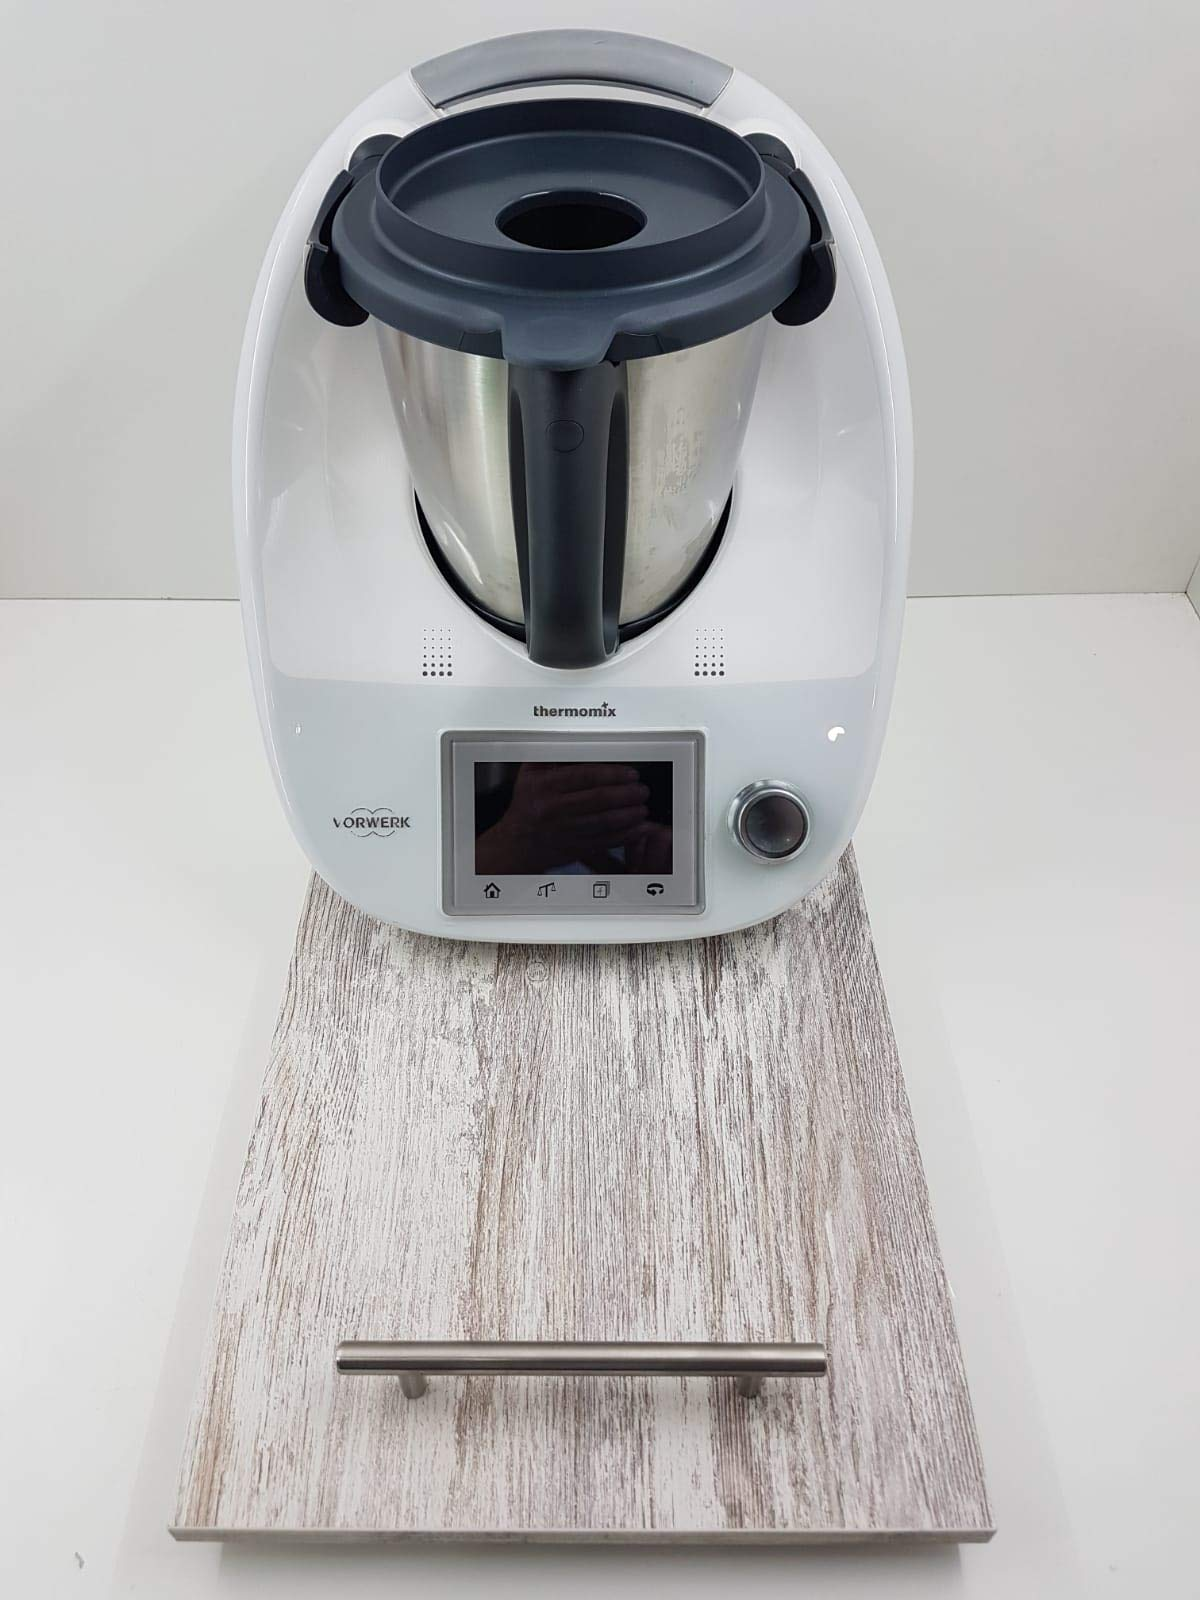 Tabla, Plataforma, Base Deslizante para THERMOMIX TM6 TM5 TM31. Mod Jaspe Grande: Amazon.es